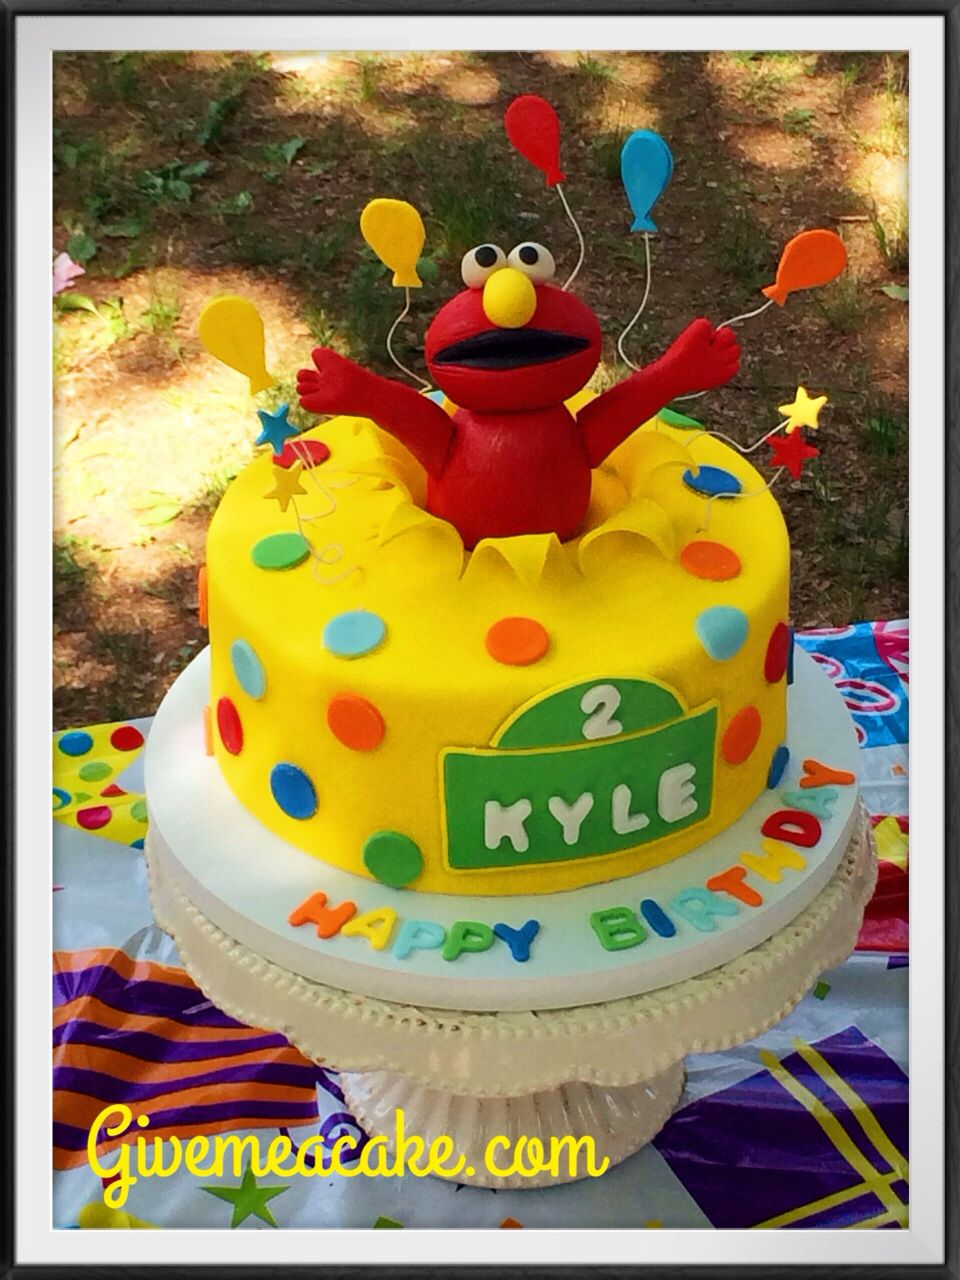 Elmo Cake By Givemeacake Customized At Edison NJ Contact Email